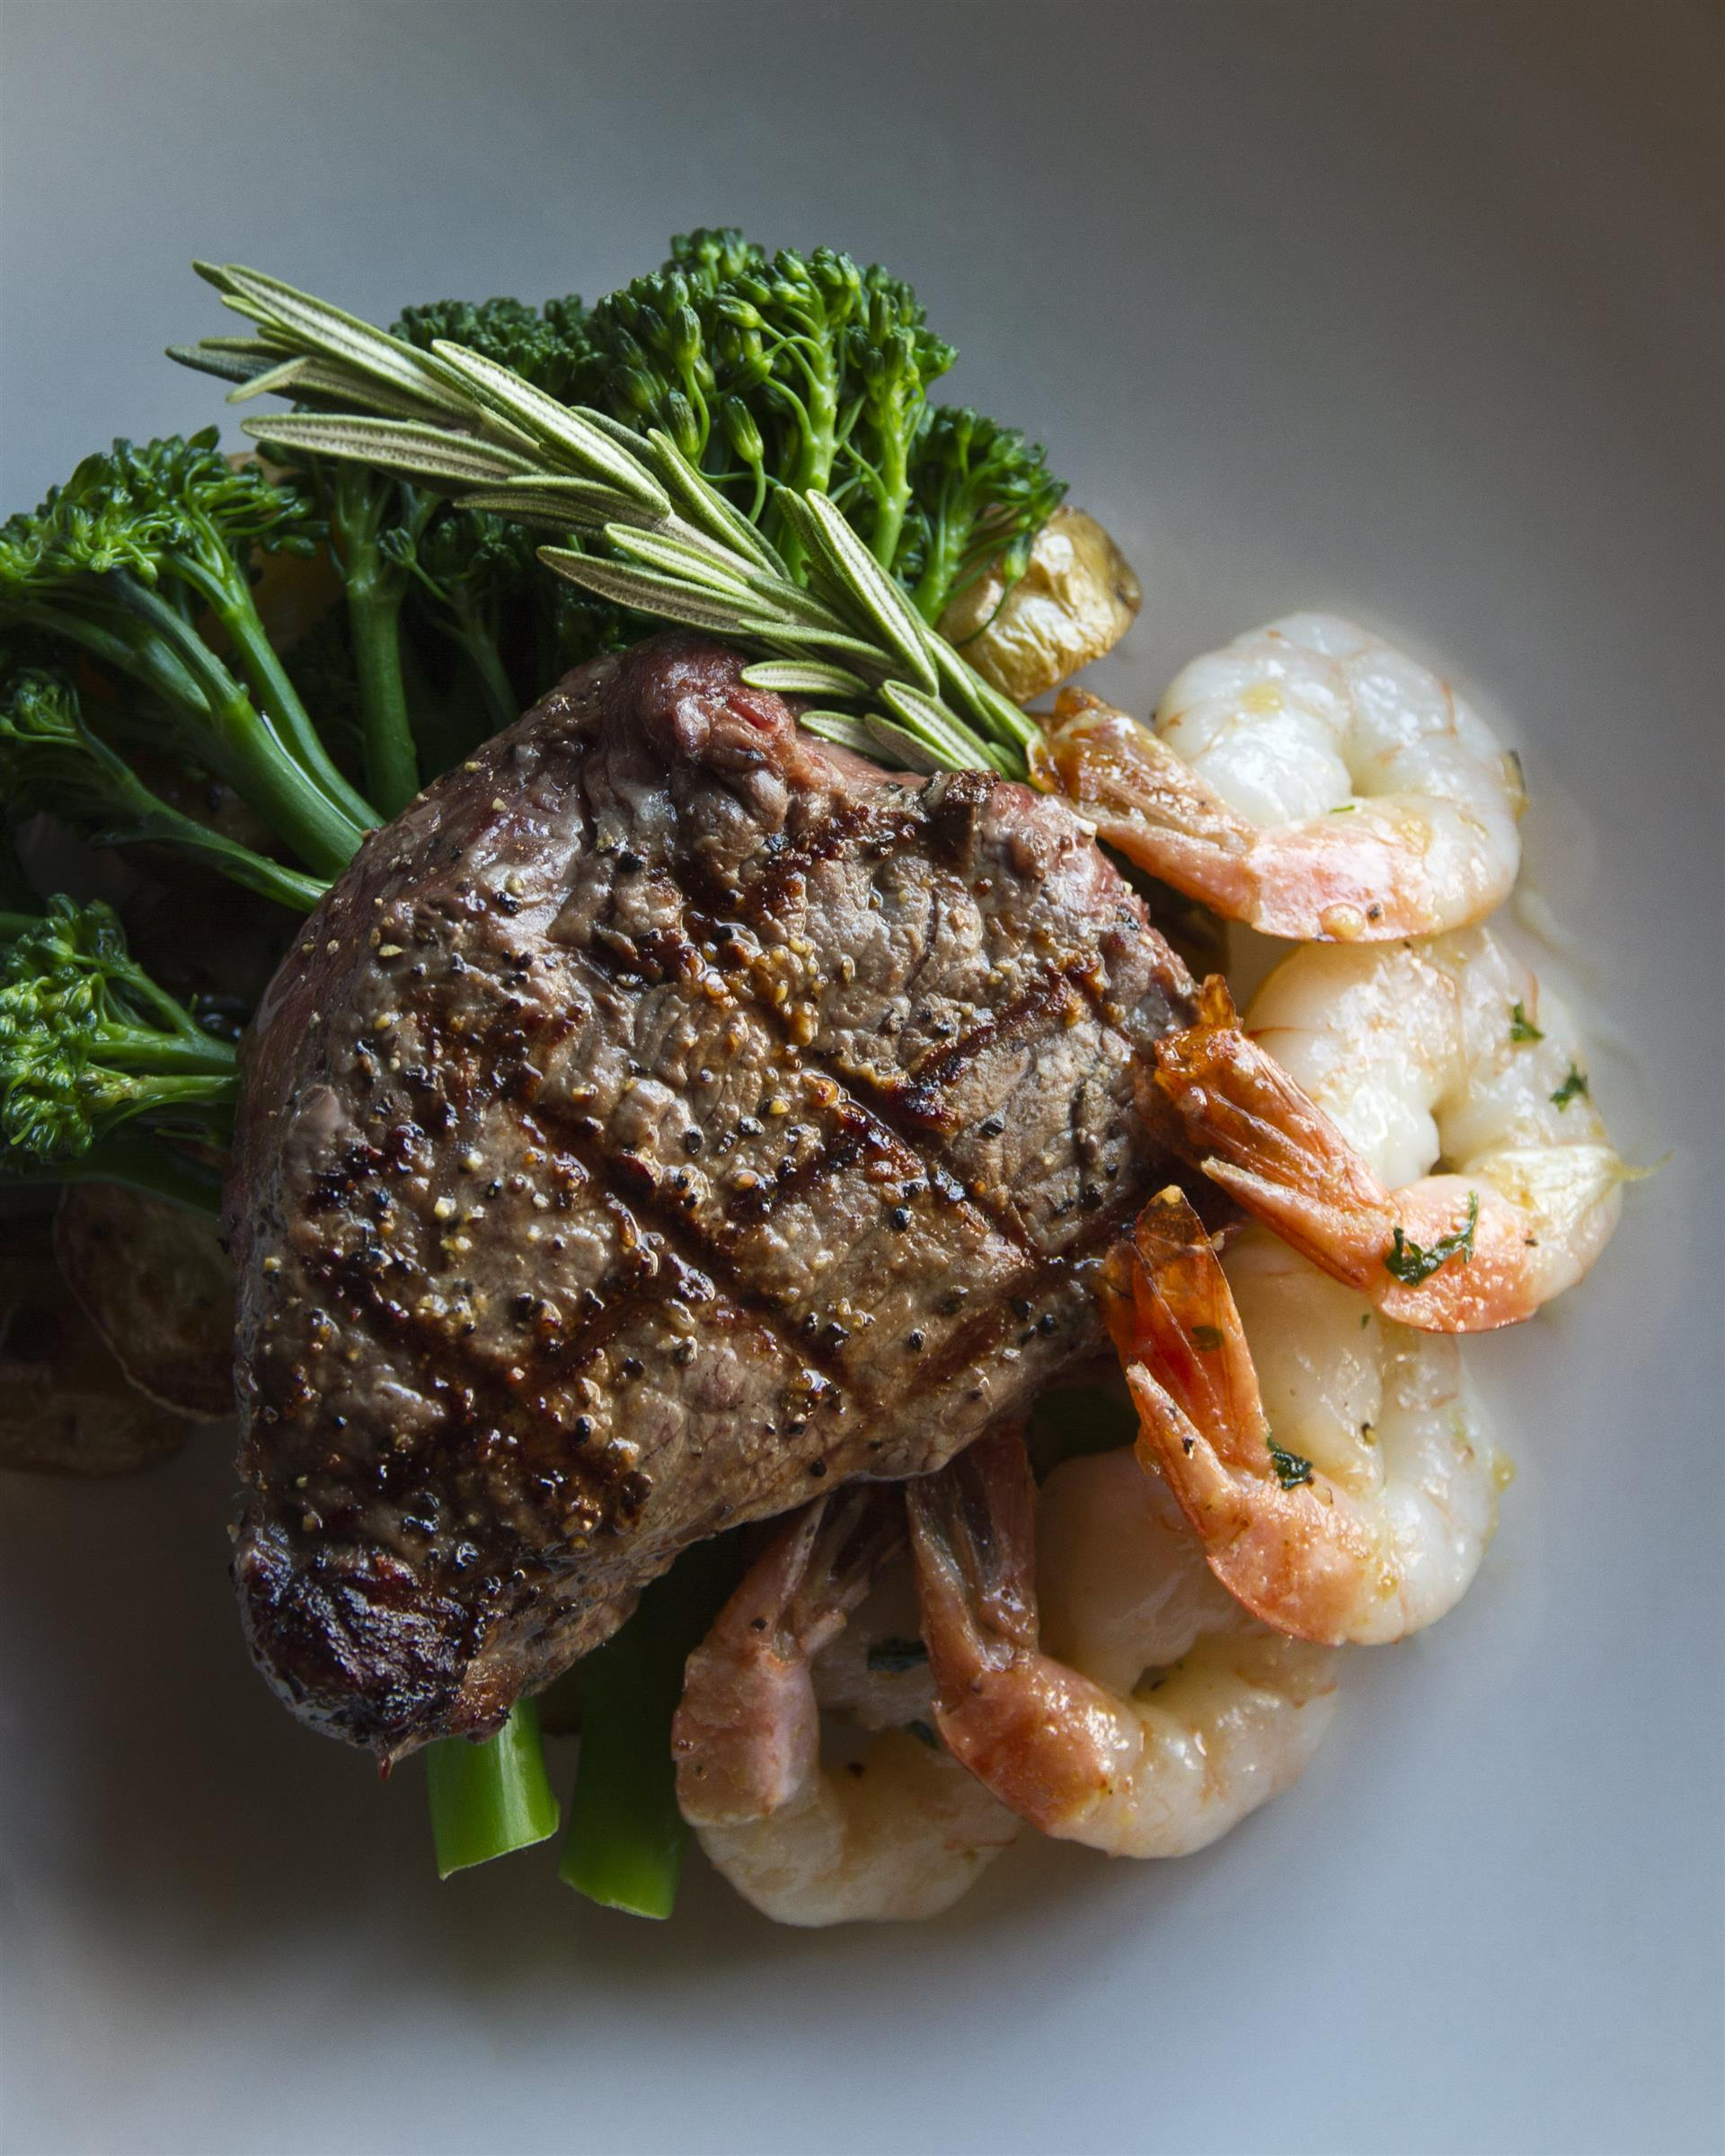 cooked steak on a plate with five shrimp and broccoli